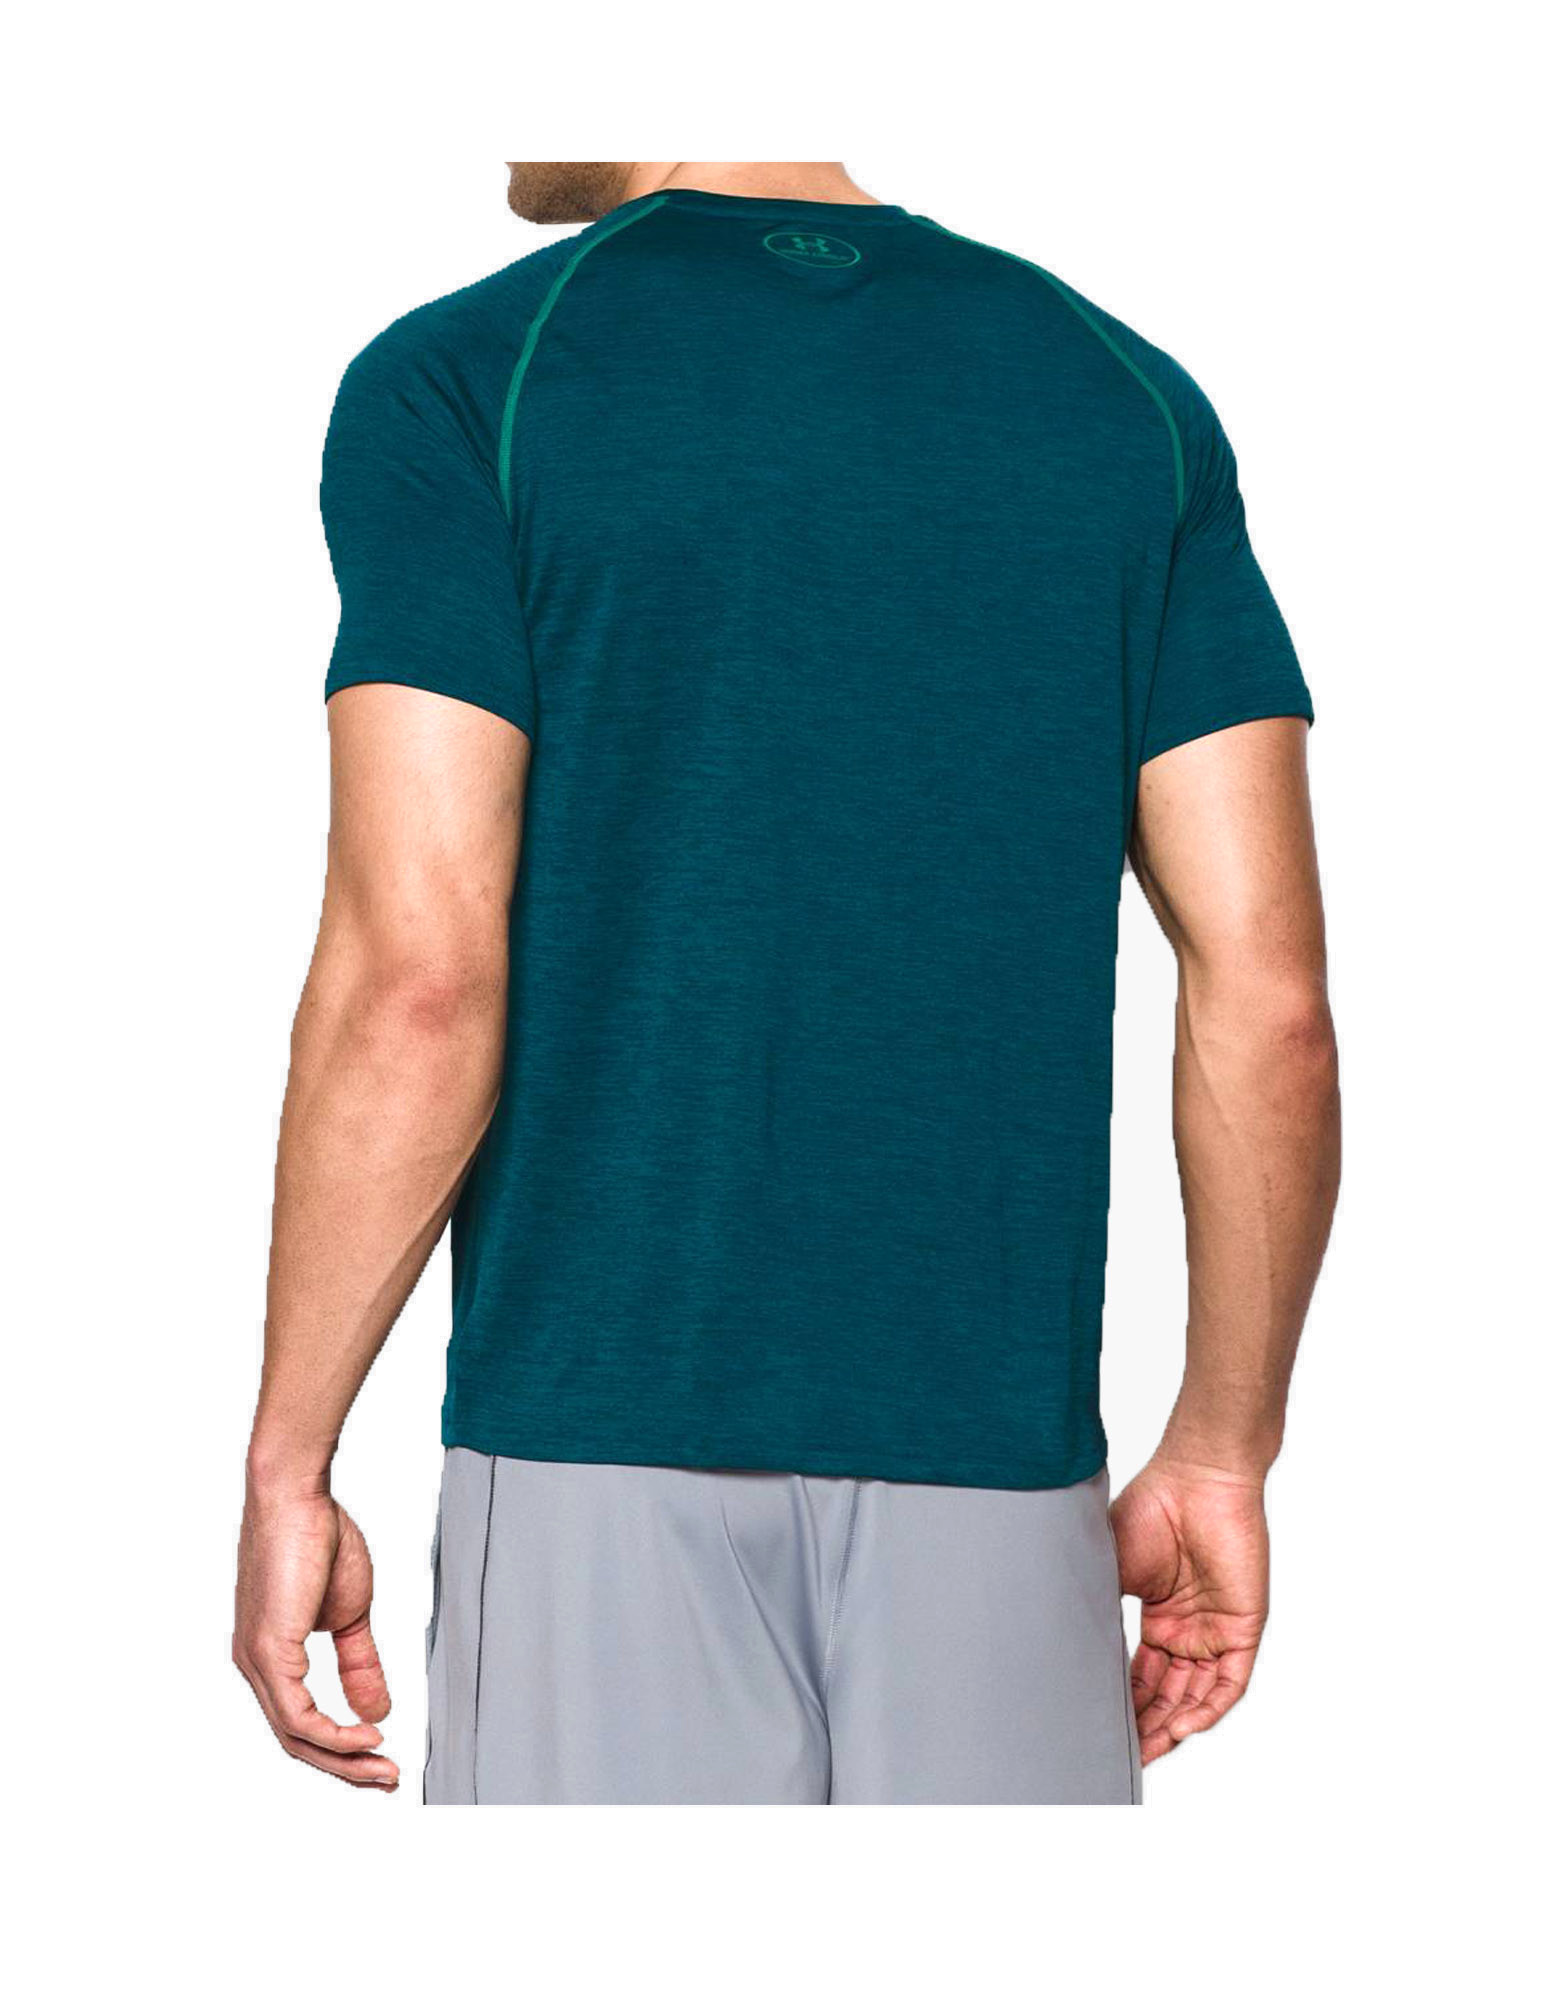 Men 39 s ua tech short sleeve t shirt by under armour colour for Teal under armour shirt